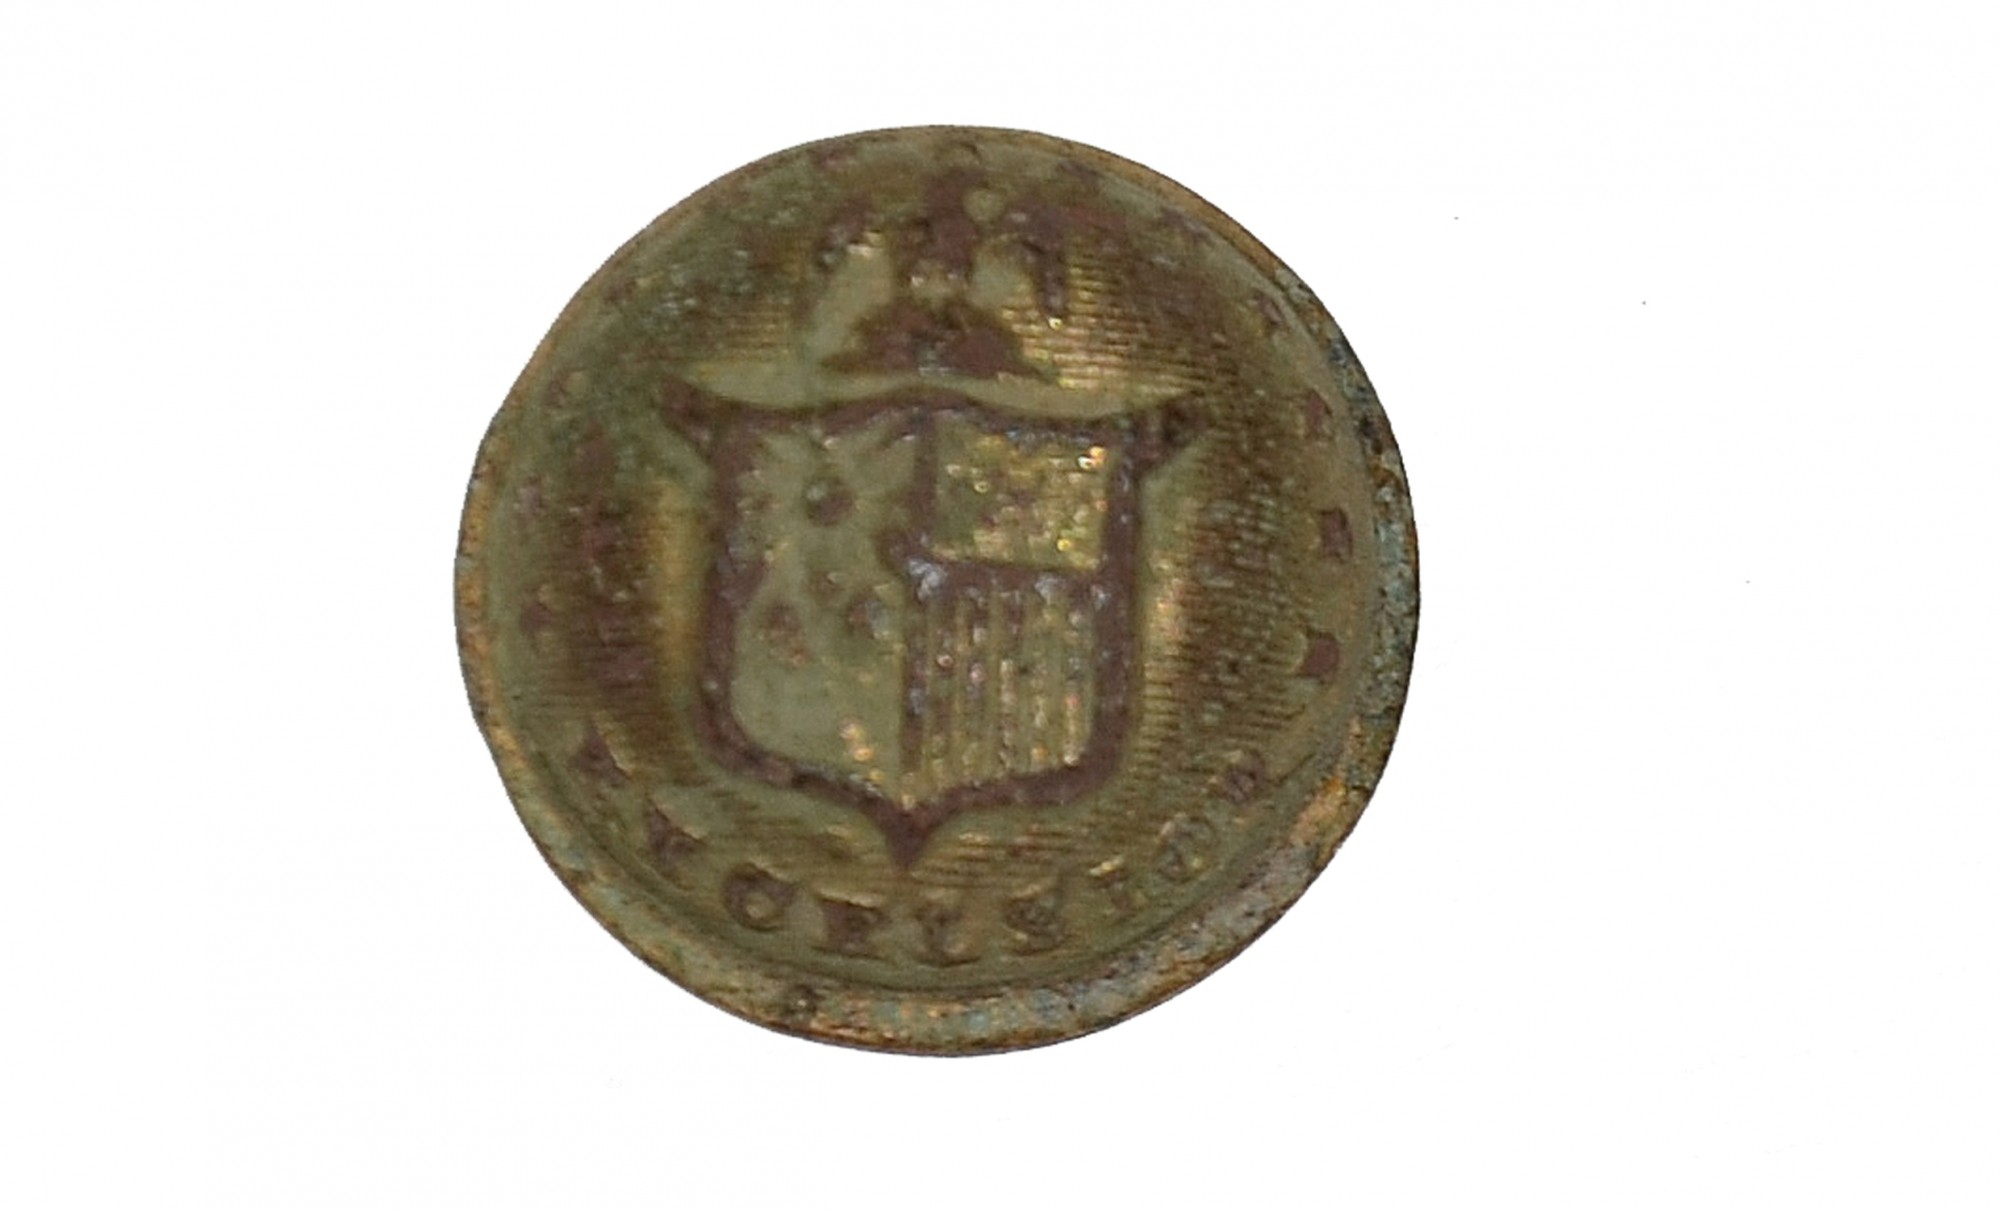 FACE ONLY OF A NEW YORK STATE CUFF BUTTON RECOVERED ON THE KLINGEL FARM, GETTYSBURG